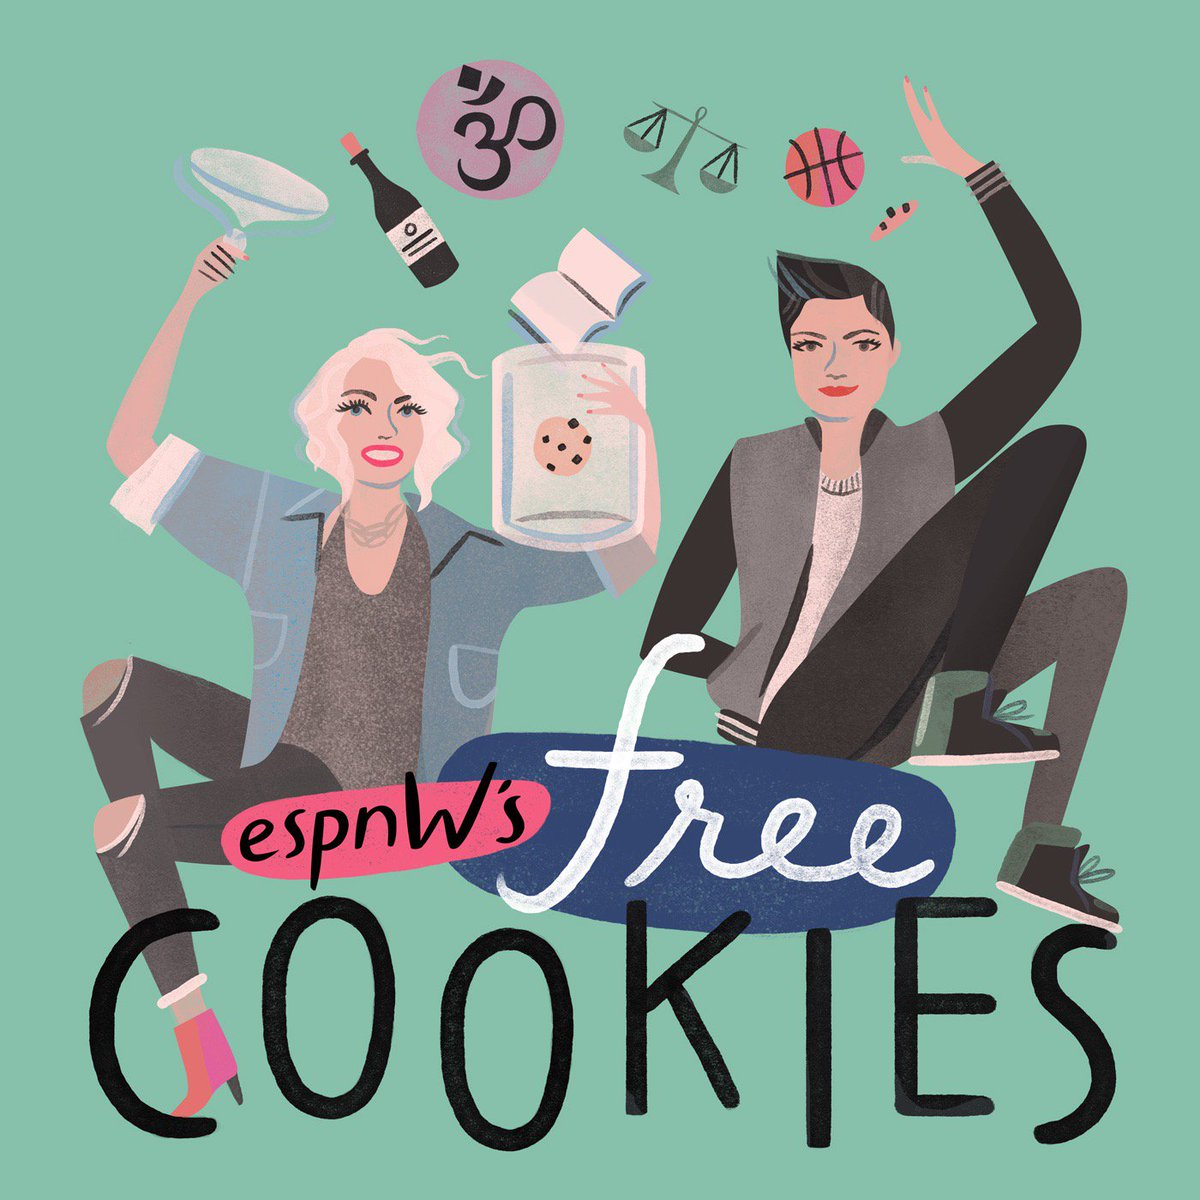 Kathryn Budig On Twitter   Our New @espnw Podcast, Free Cookies Is